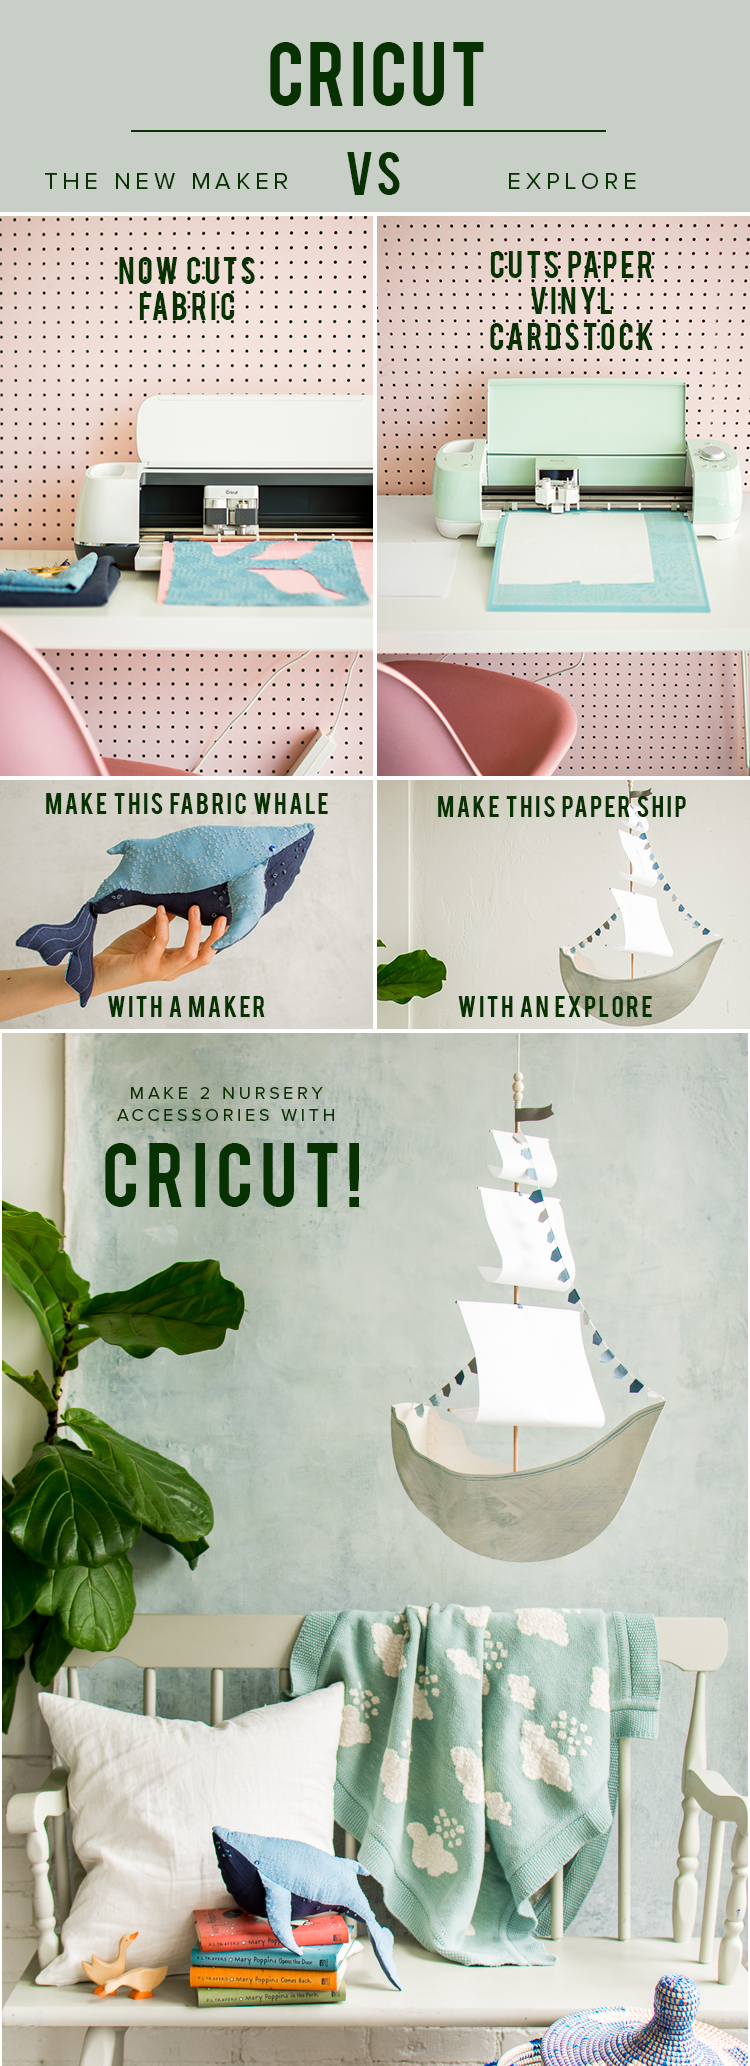 Use the Cricut Maker and the Cricut Explore to create these two nursery projects